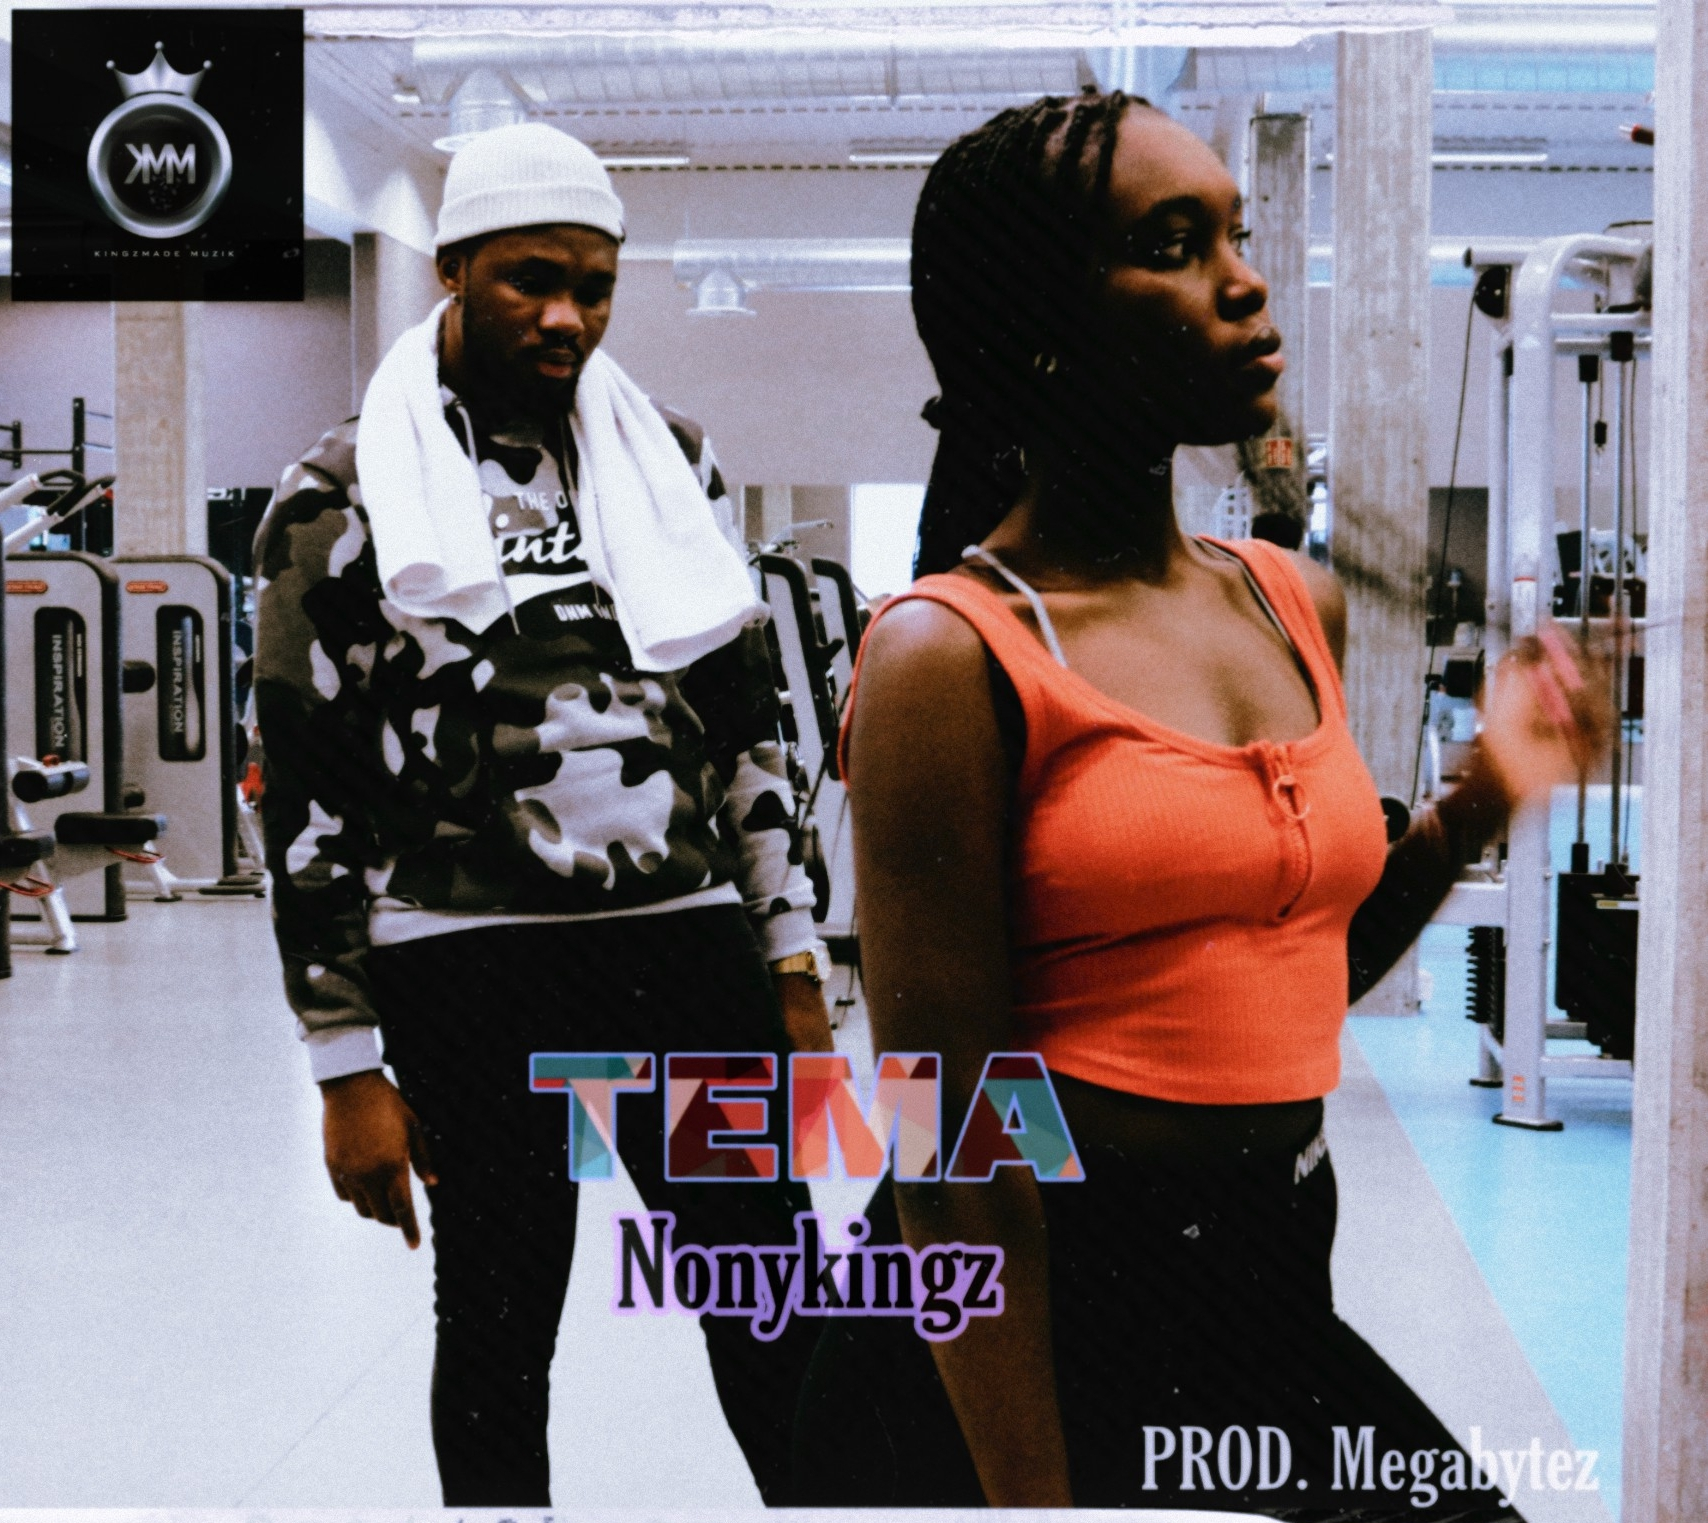 VIDEO: Nonykingz – Tema